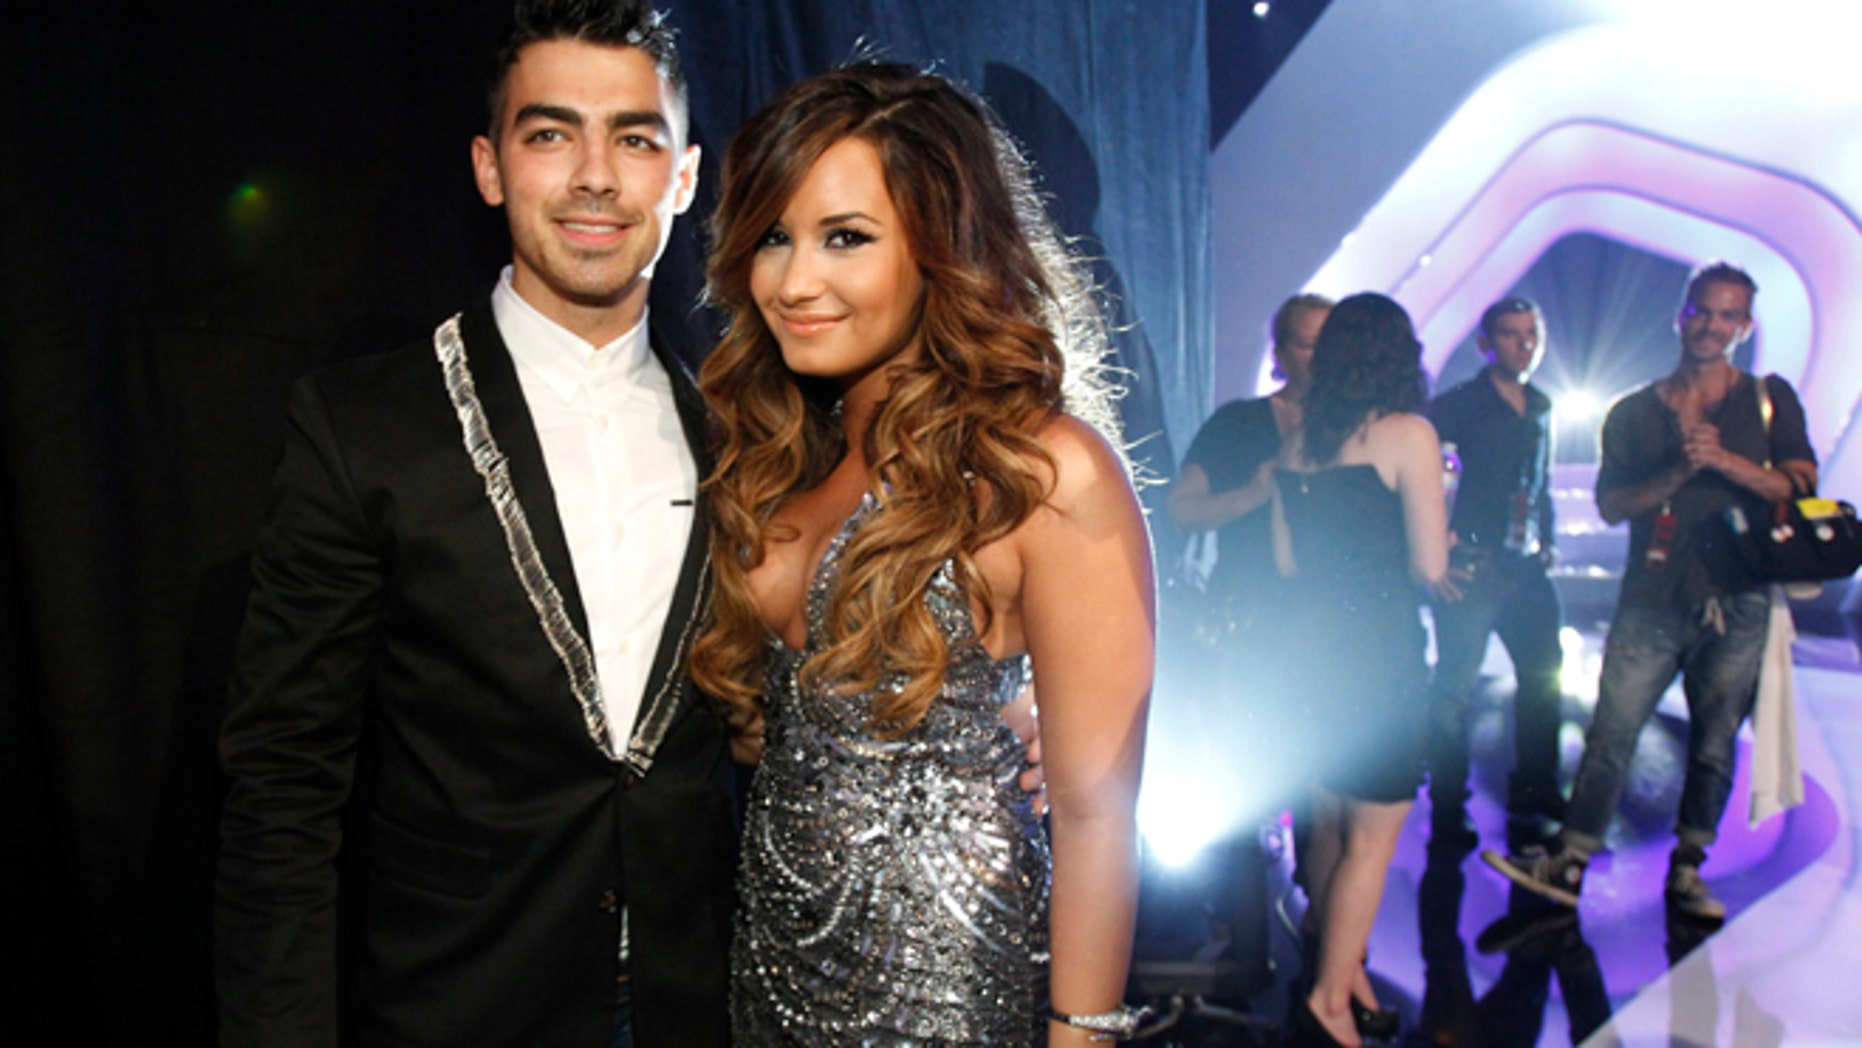 August 28, 2011. Singers Joe Jonas and Demi Lovato (R) arrive at the 2011 MTV Video Music Awards in Los Angeles.